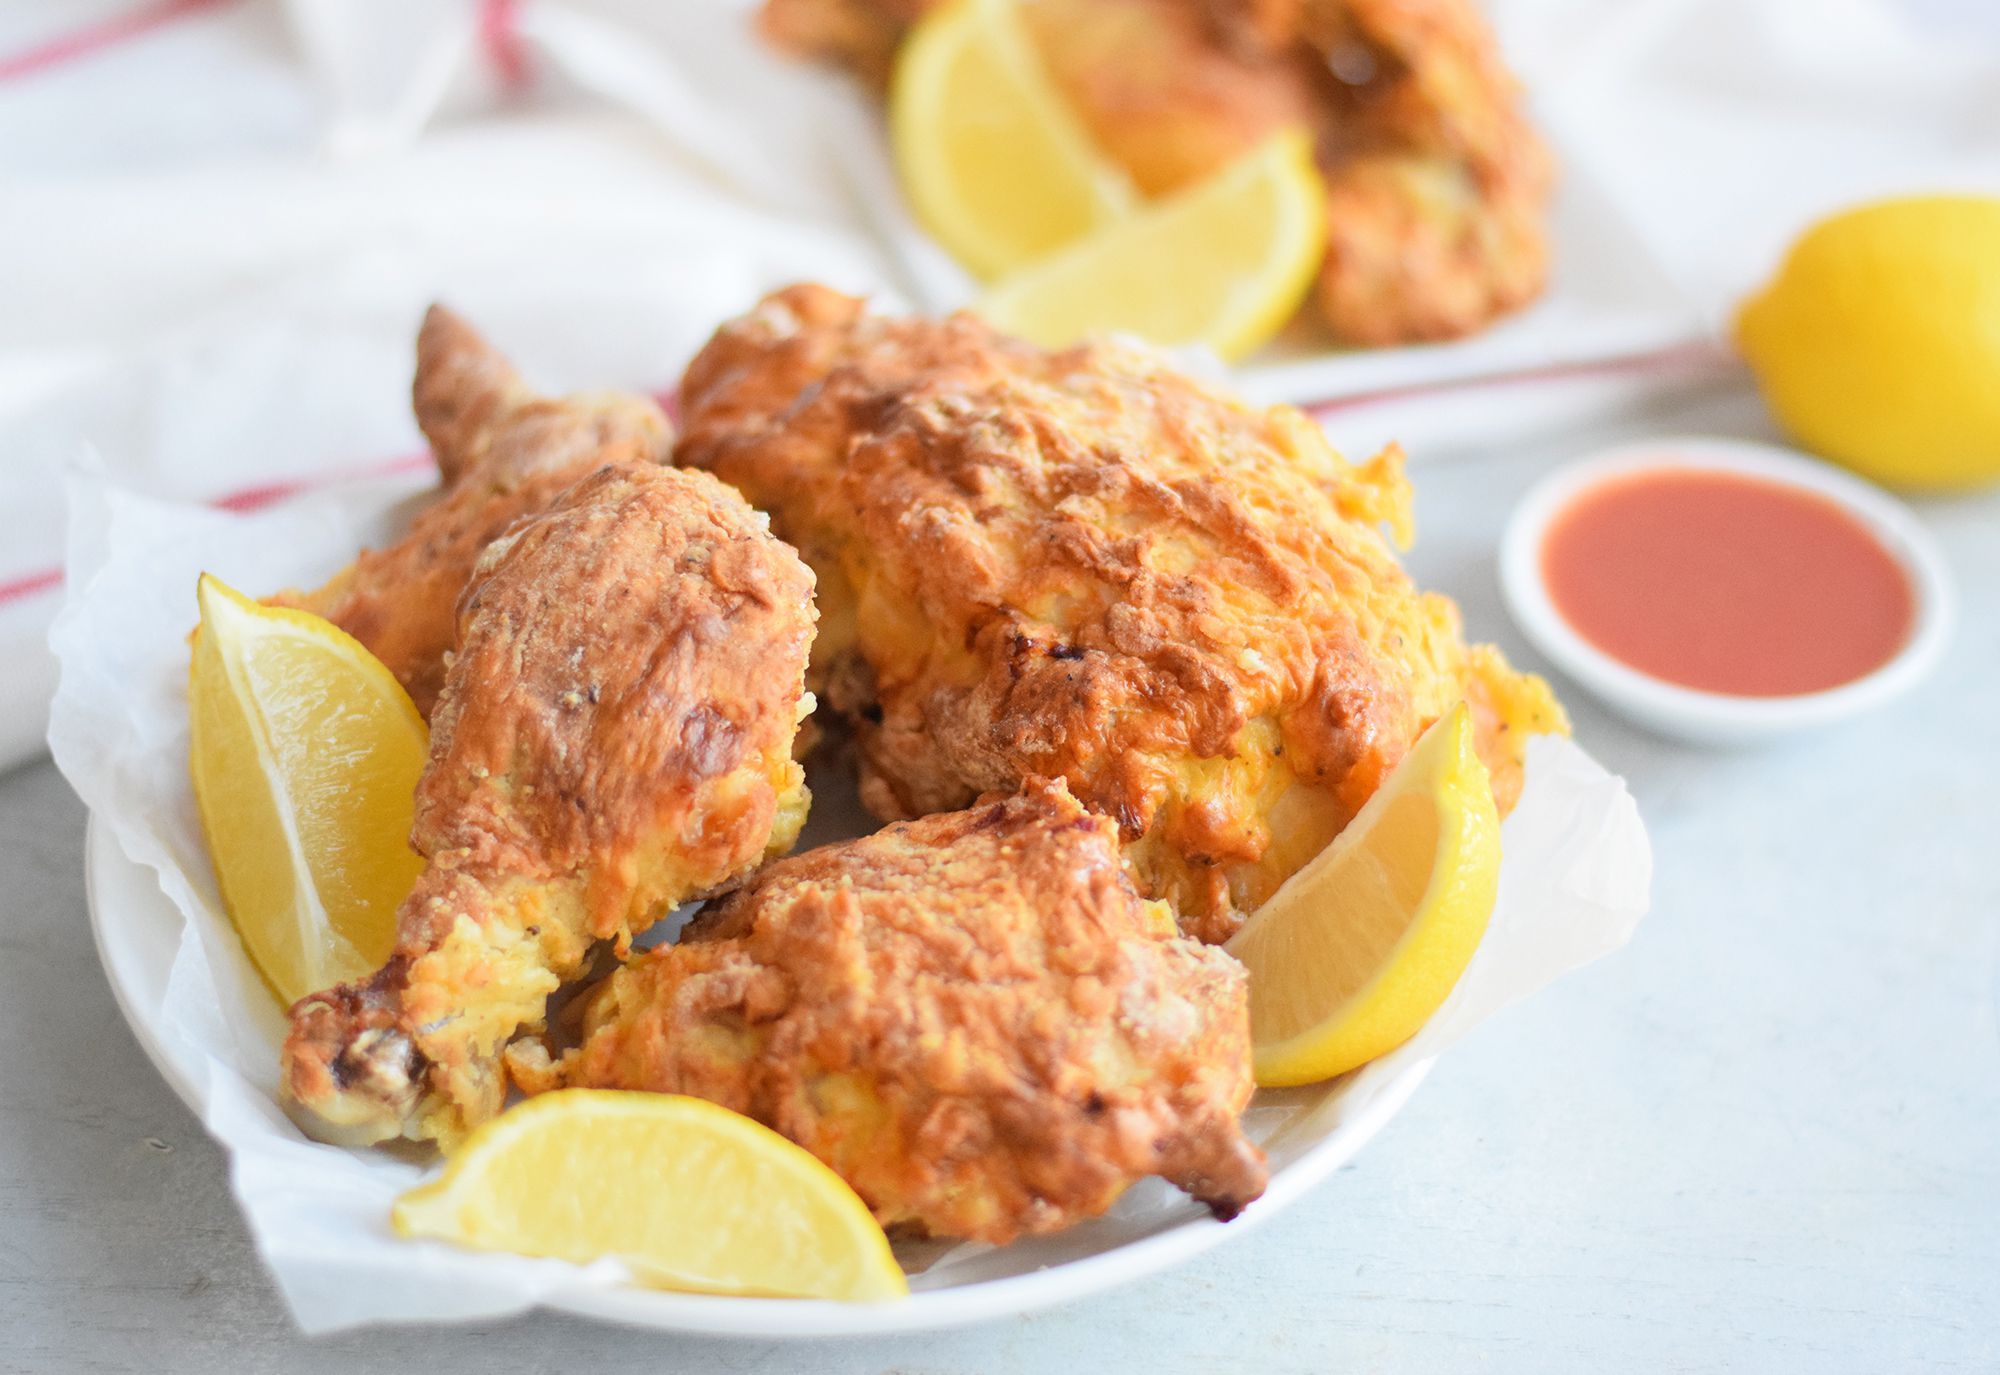 You Barely Have to Use Any Oil to Make Crispy Golden Air Fryer Fried Chicken